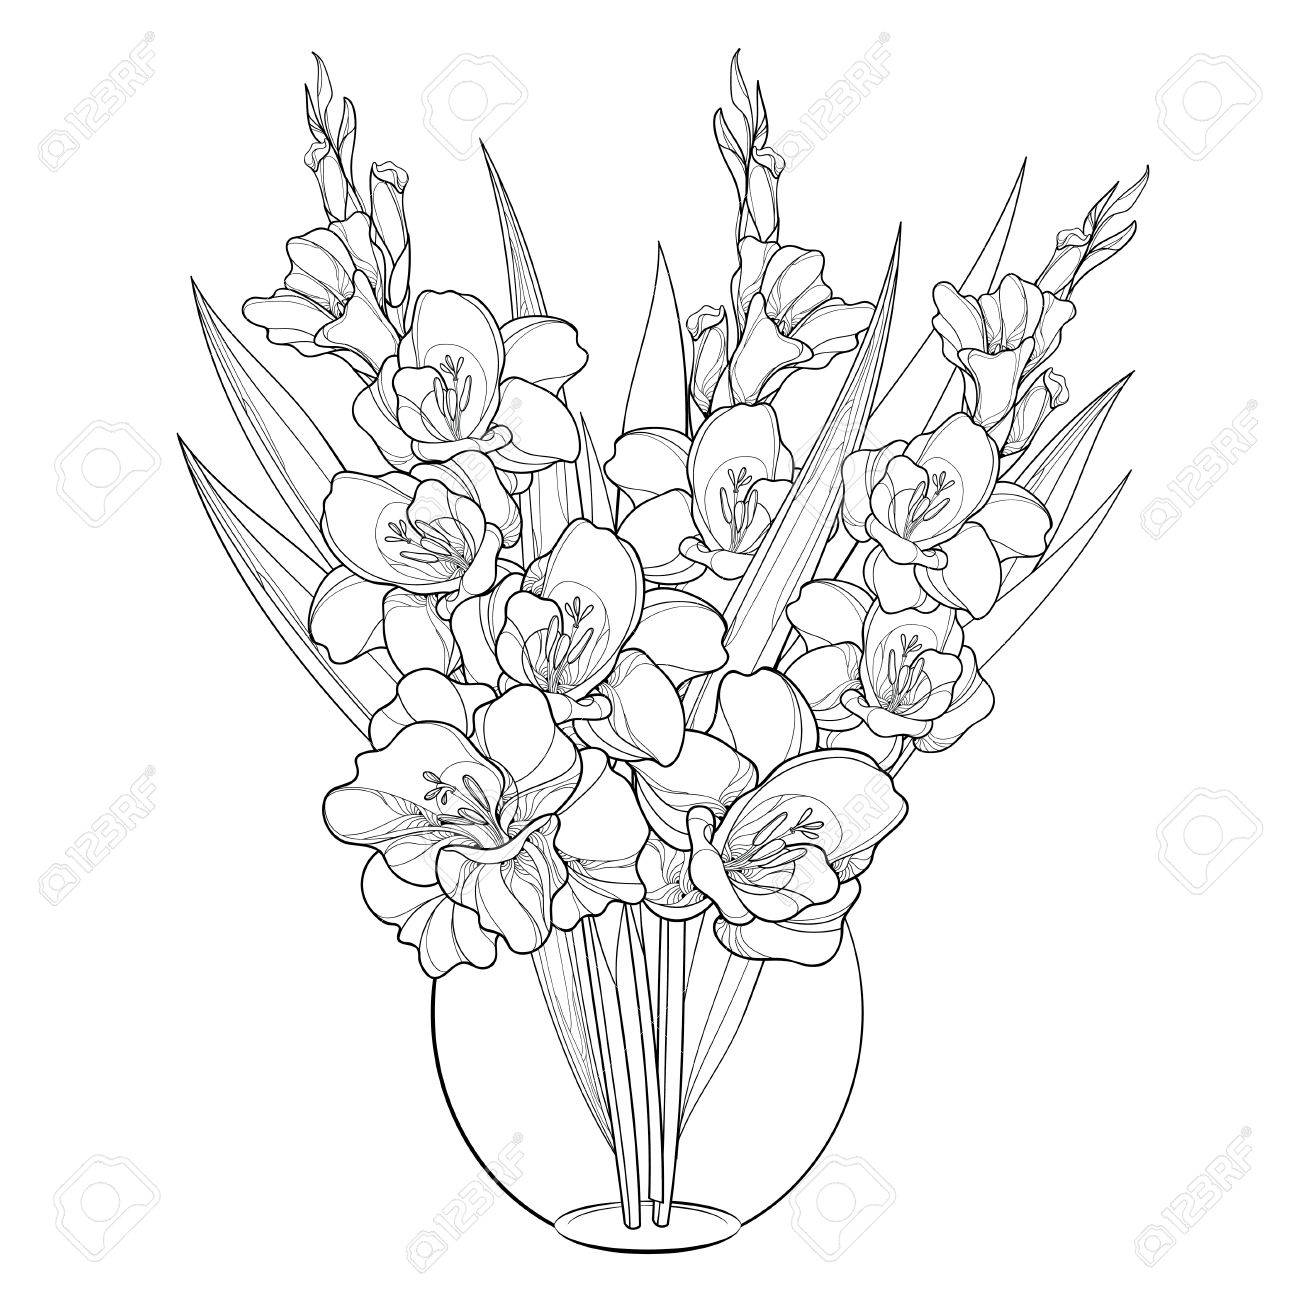 225 & Bouquet with Gladiolus or sword lily in vase. Flower bud and..